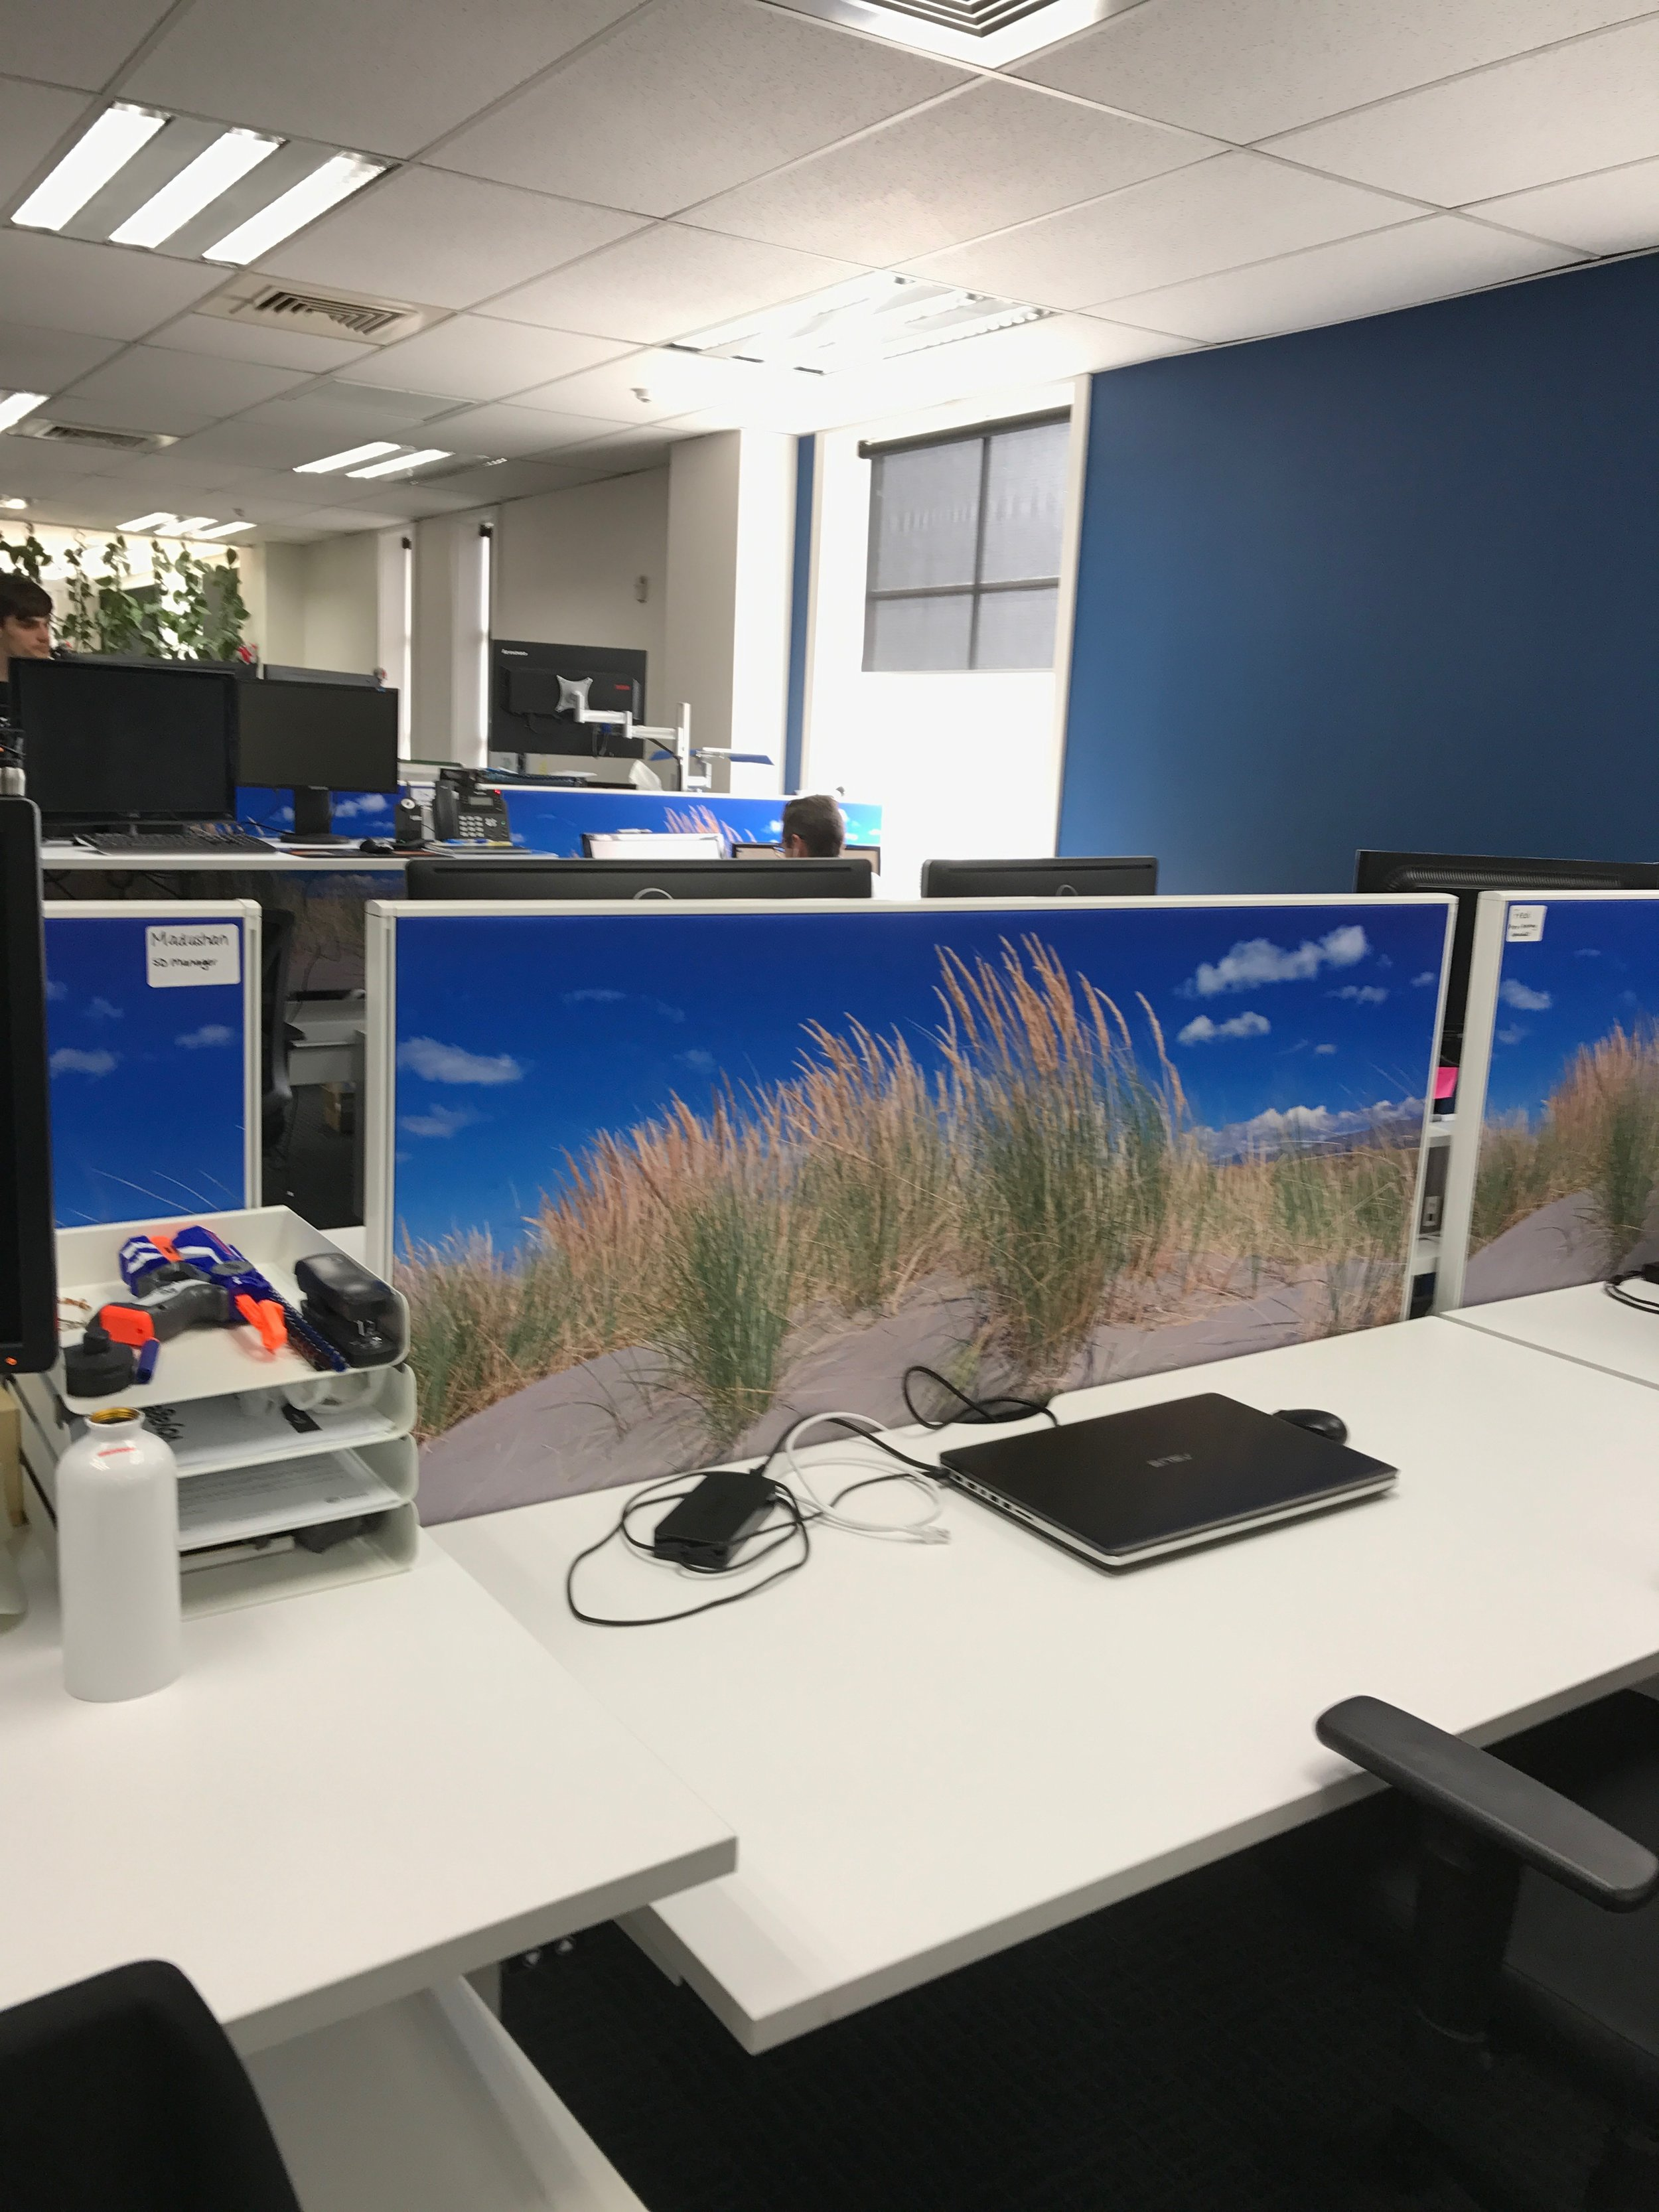 Natural feeling workplace design